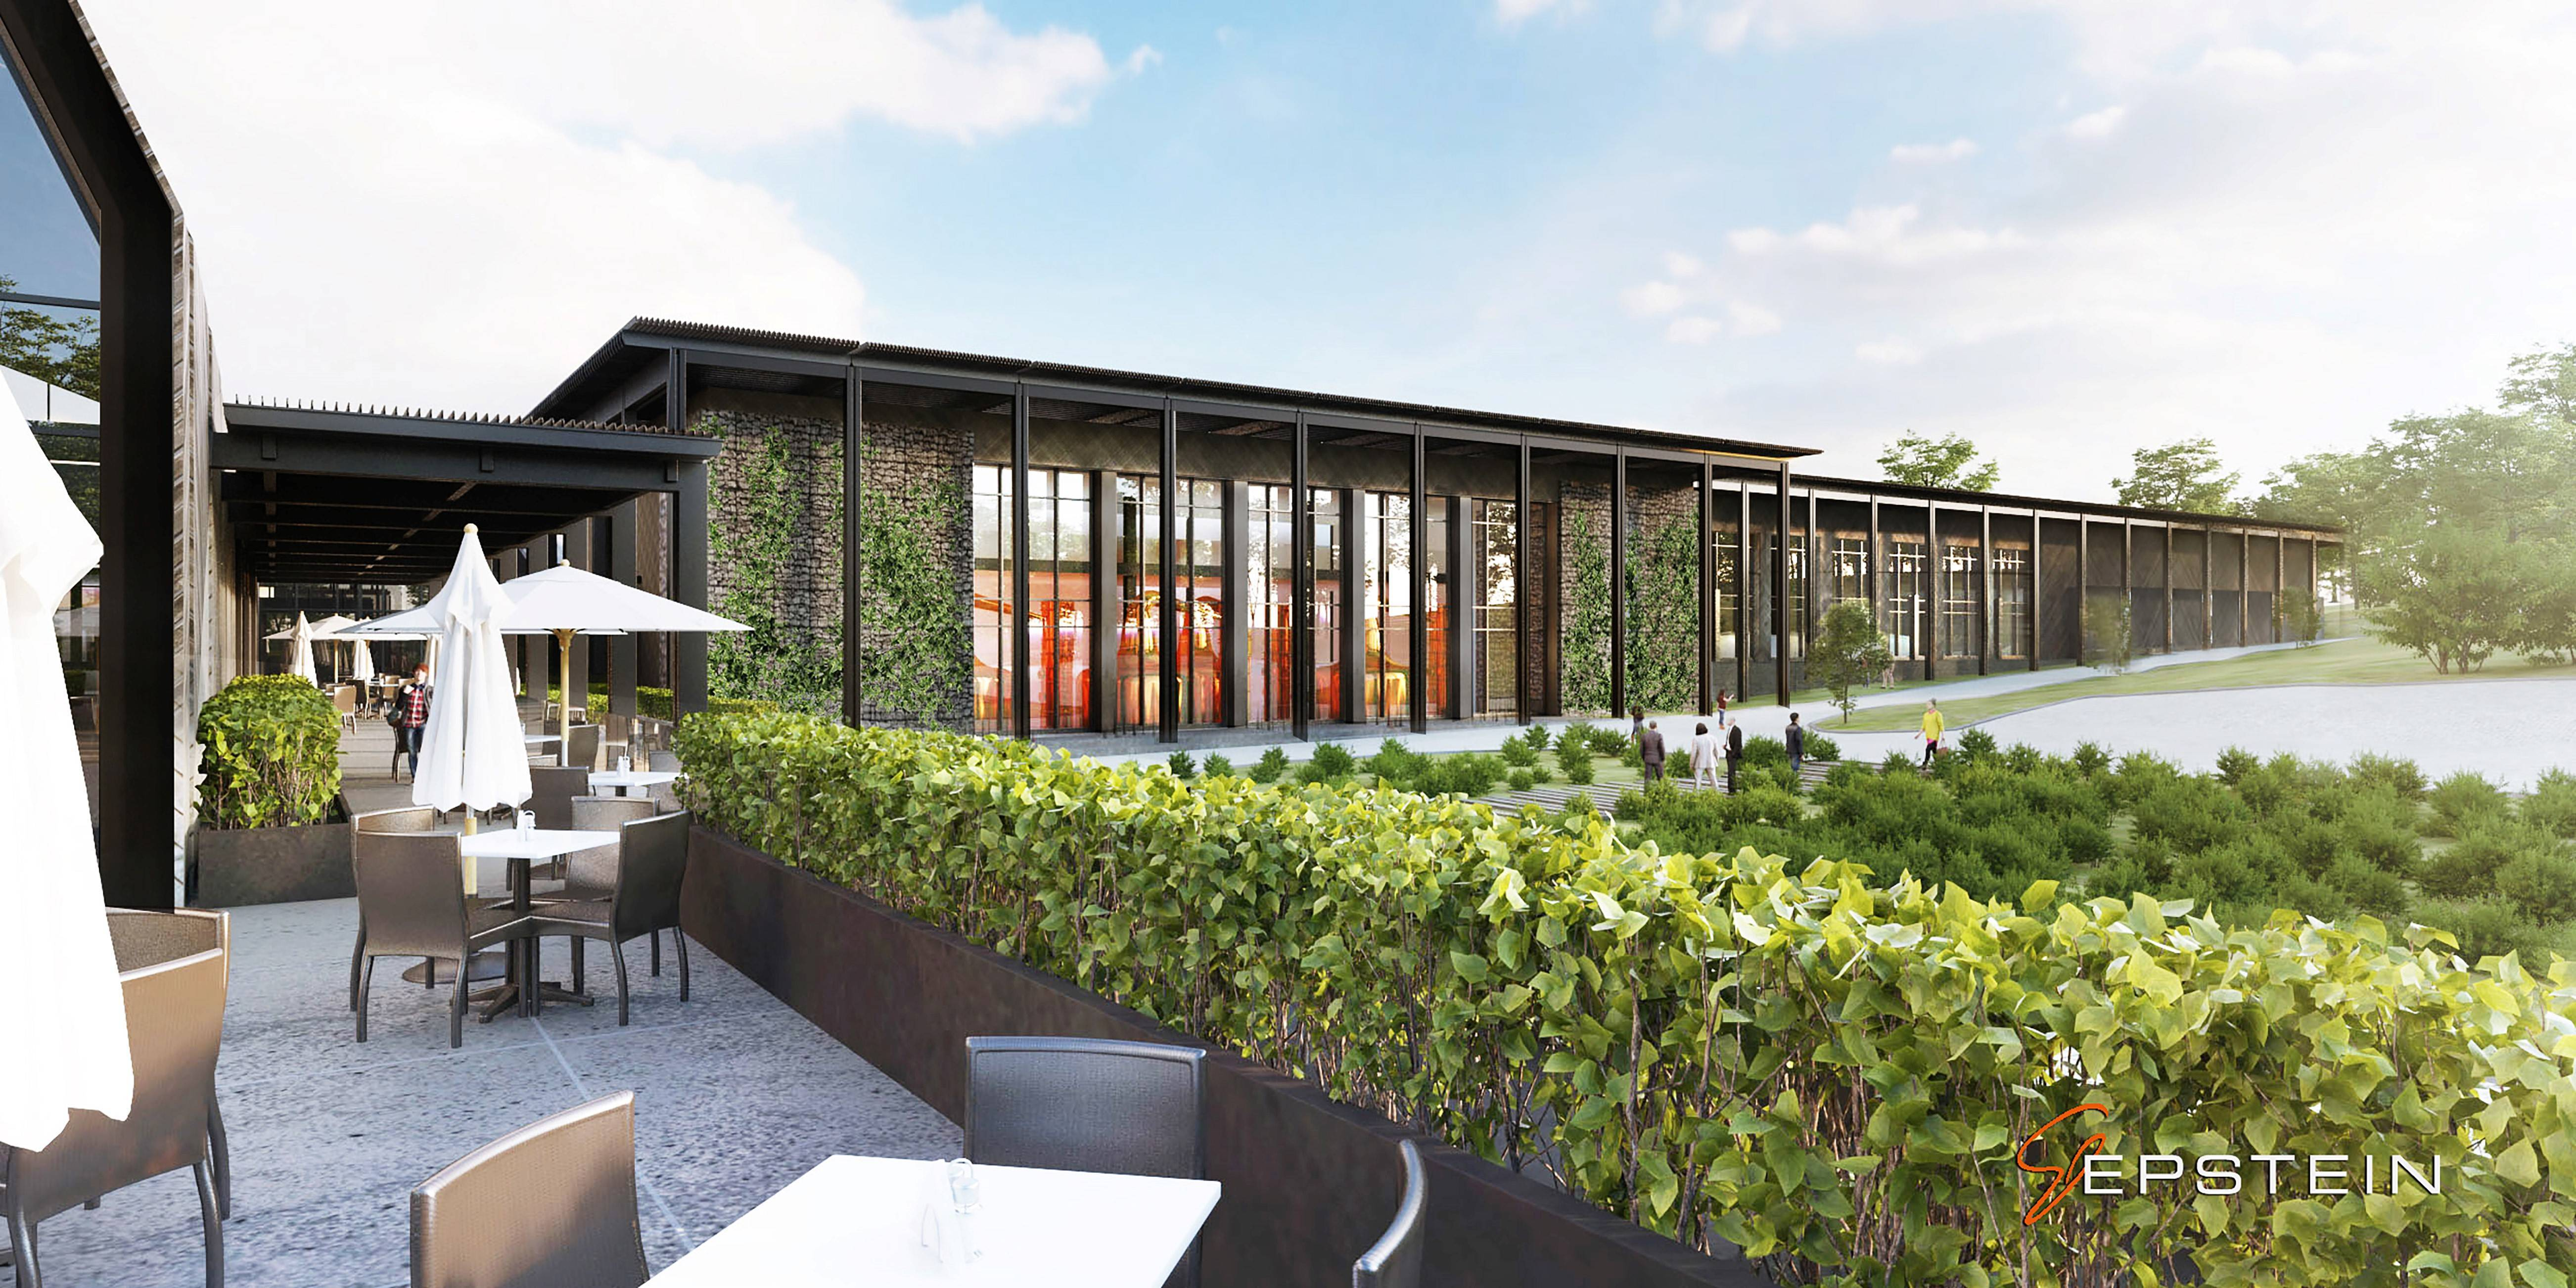 Distillery Project Receives Site Plan Approval